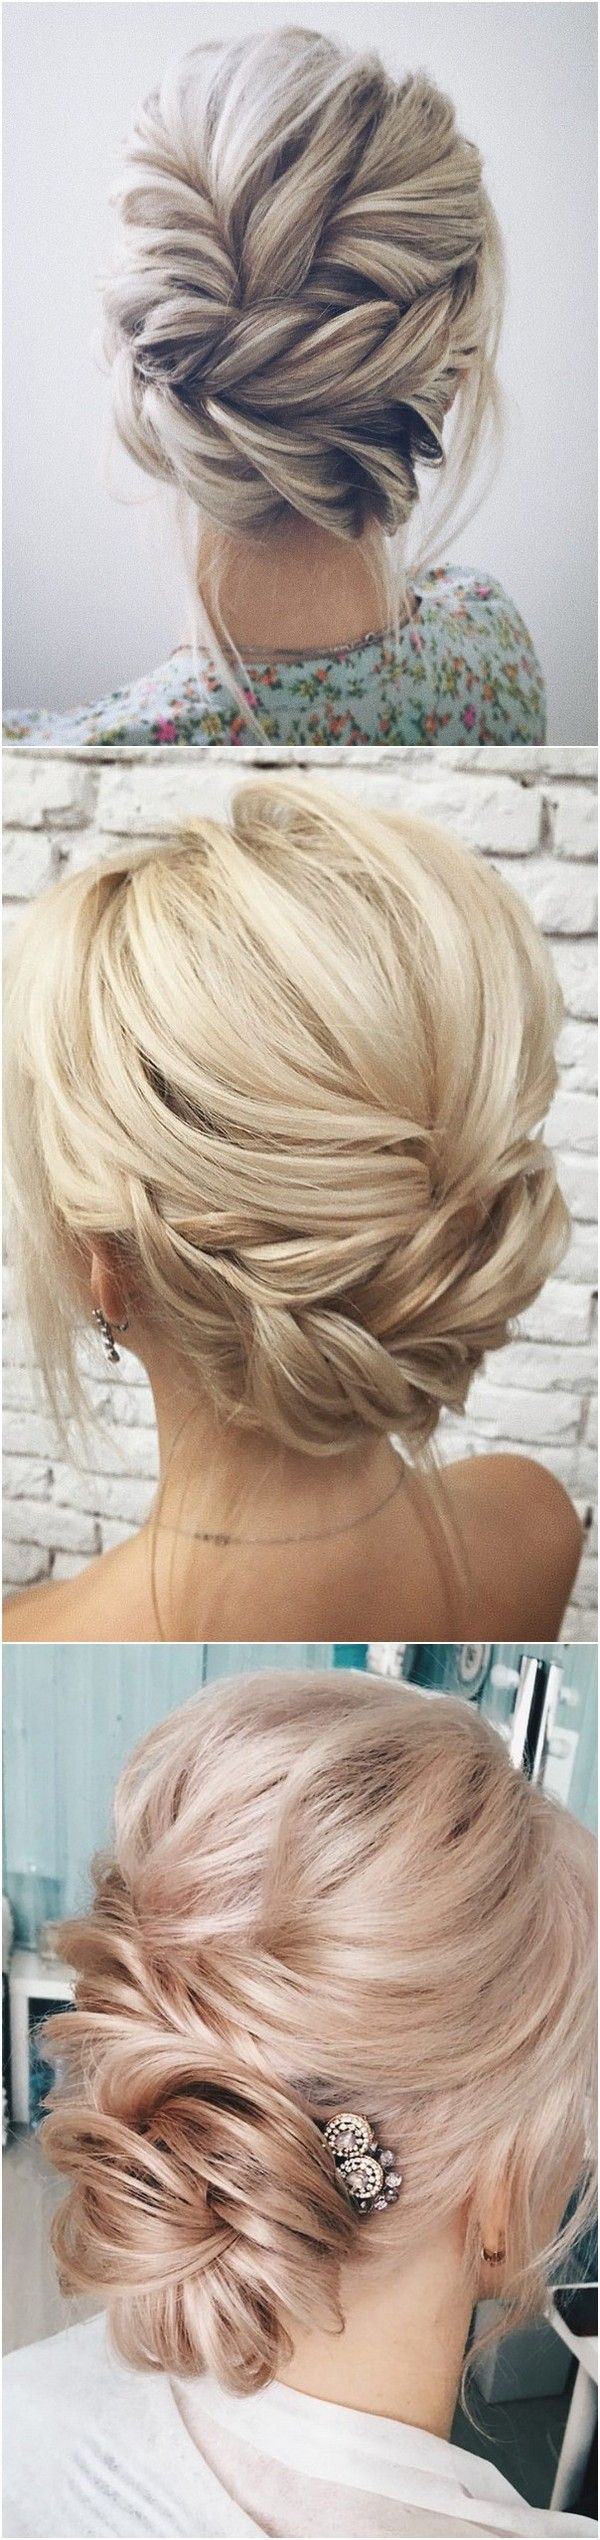 Trending Updo Wedding Hairstyles from Instagram Page of